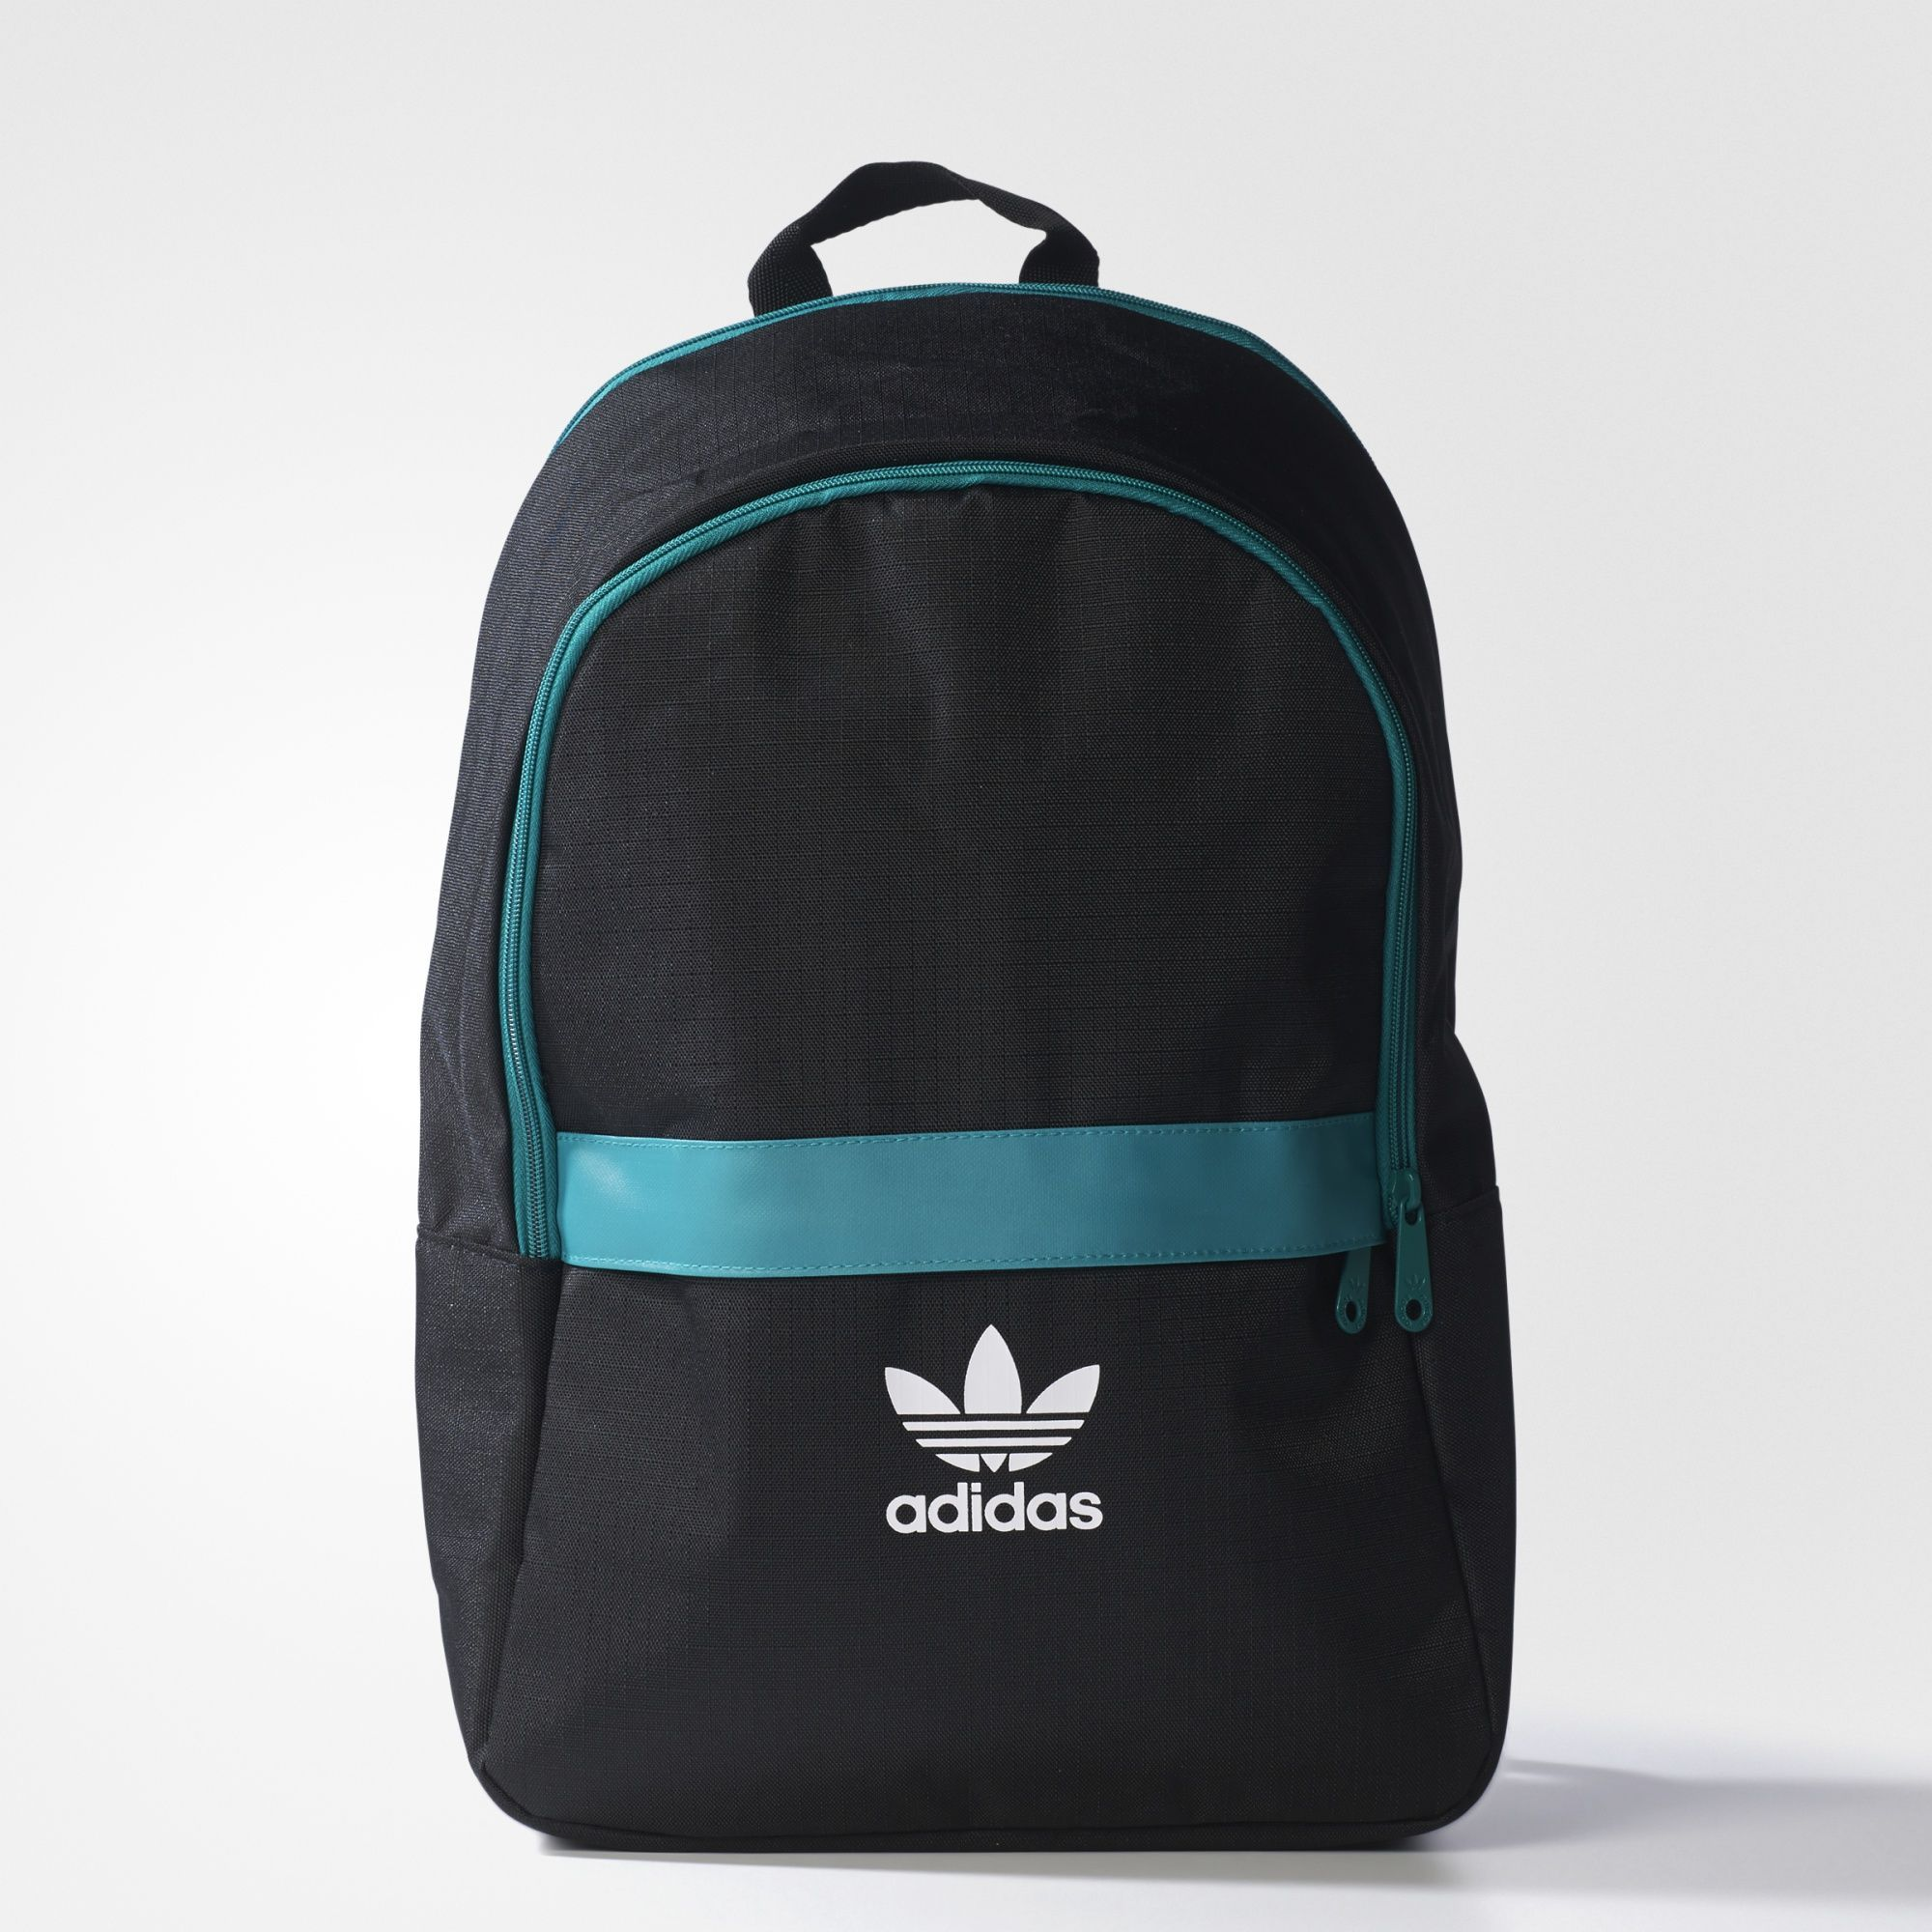 adidas furthering my education pinterest adidas black